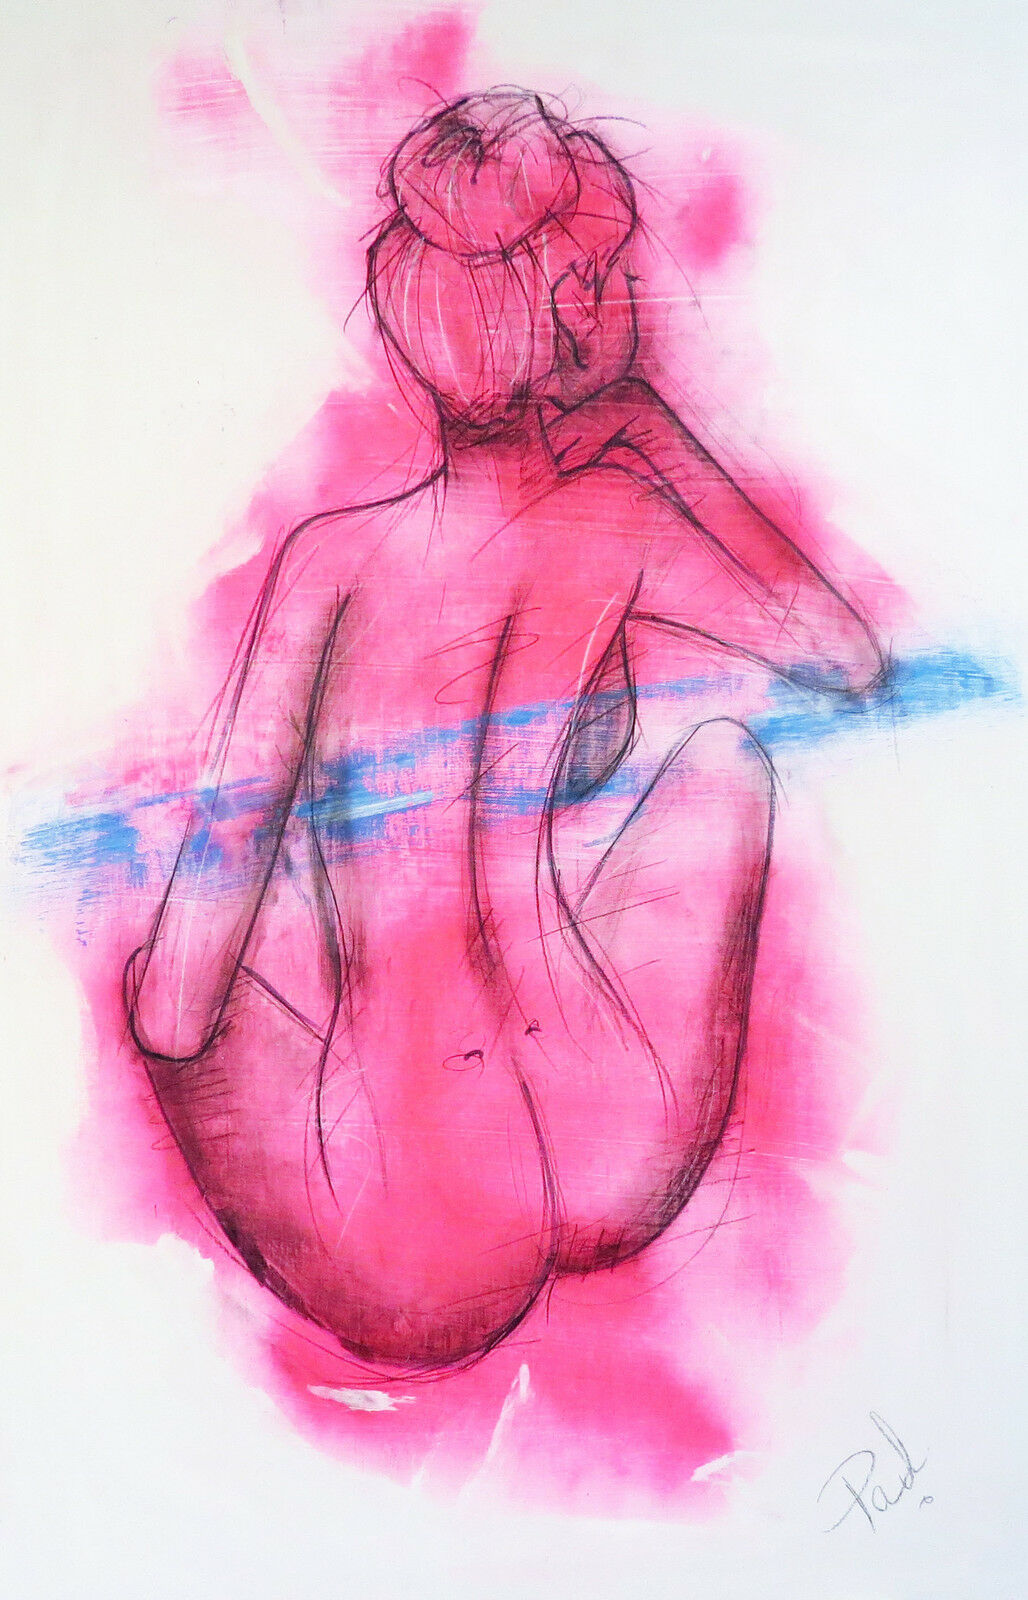 Nude abstract body body body girl woman Rosa street art print authentic COA by Andy Baker 5bfb5b